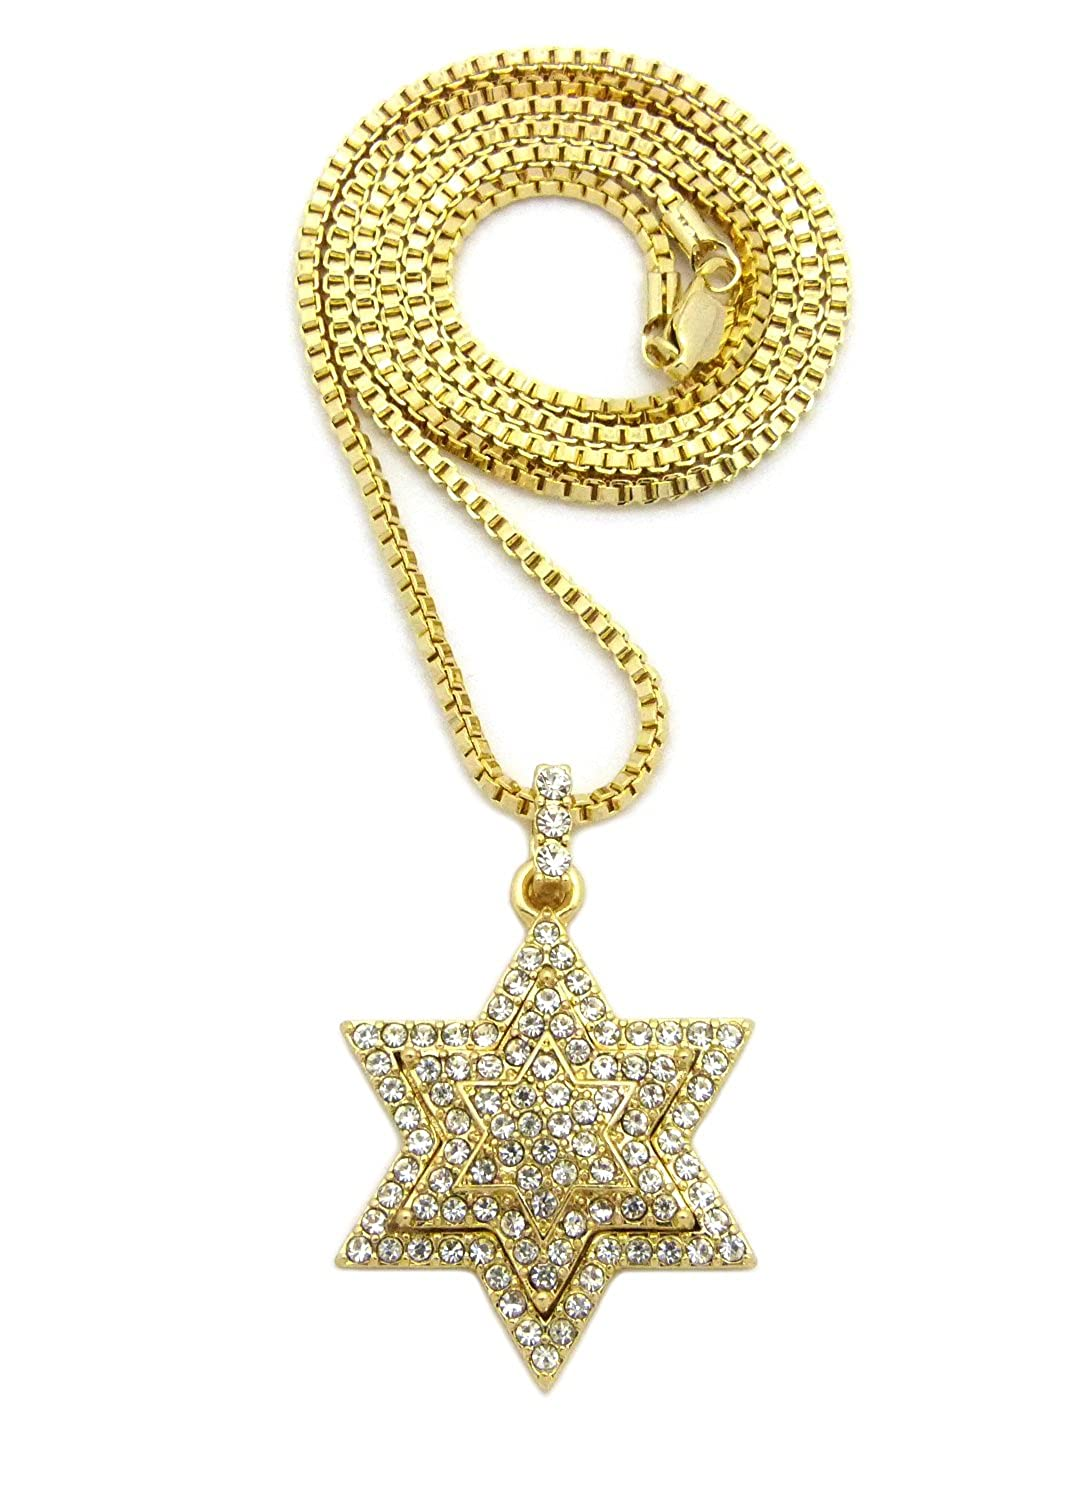 ICED OUT 6-POINTSTAR PENDANT /& 24 BOX//CUBAN//ROPE CHAIN HIP HOP NECKLACE XQP87G